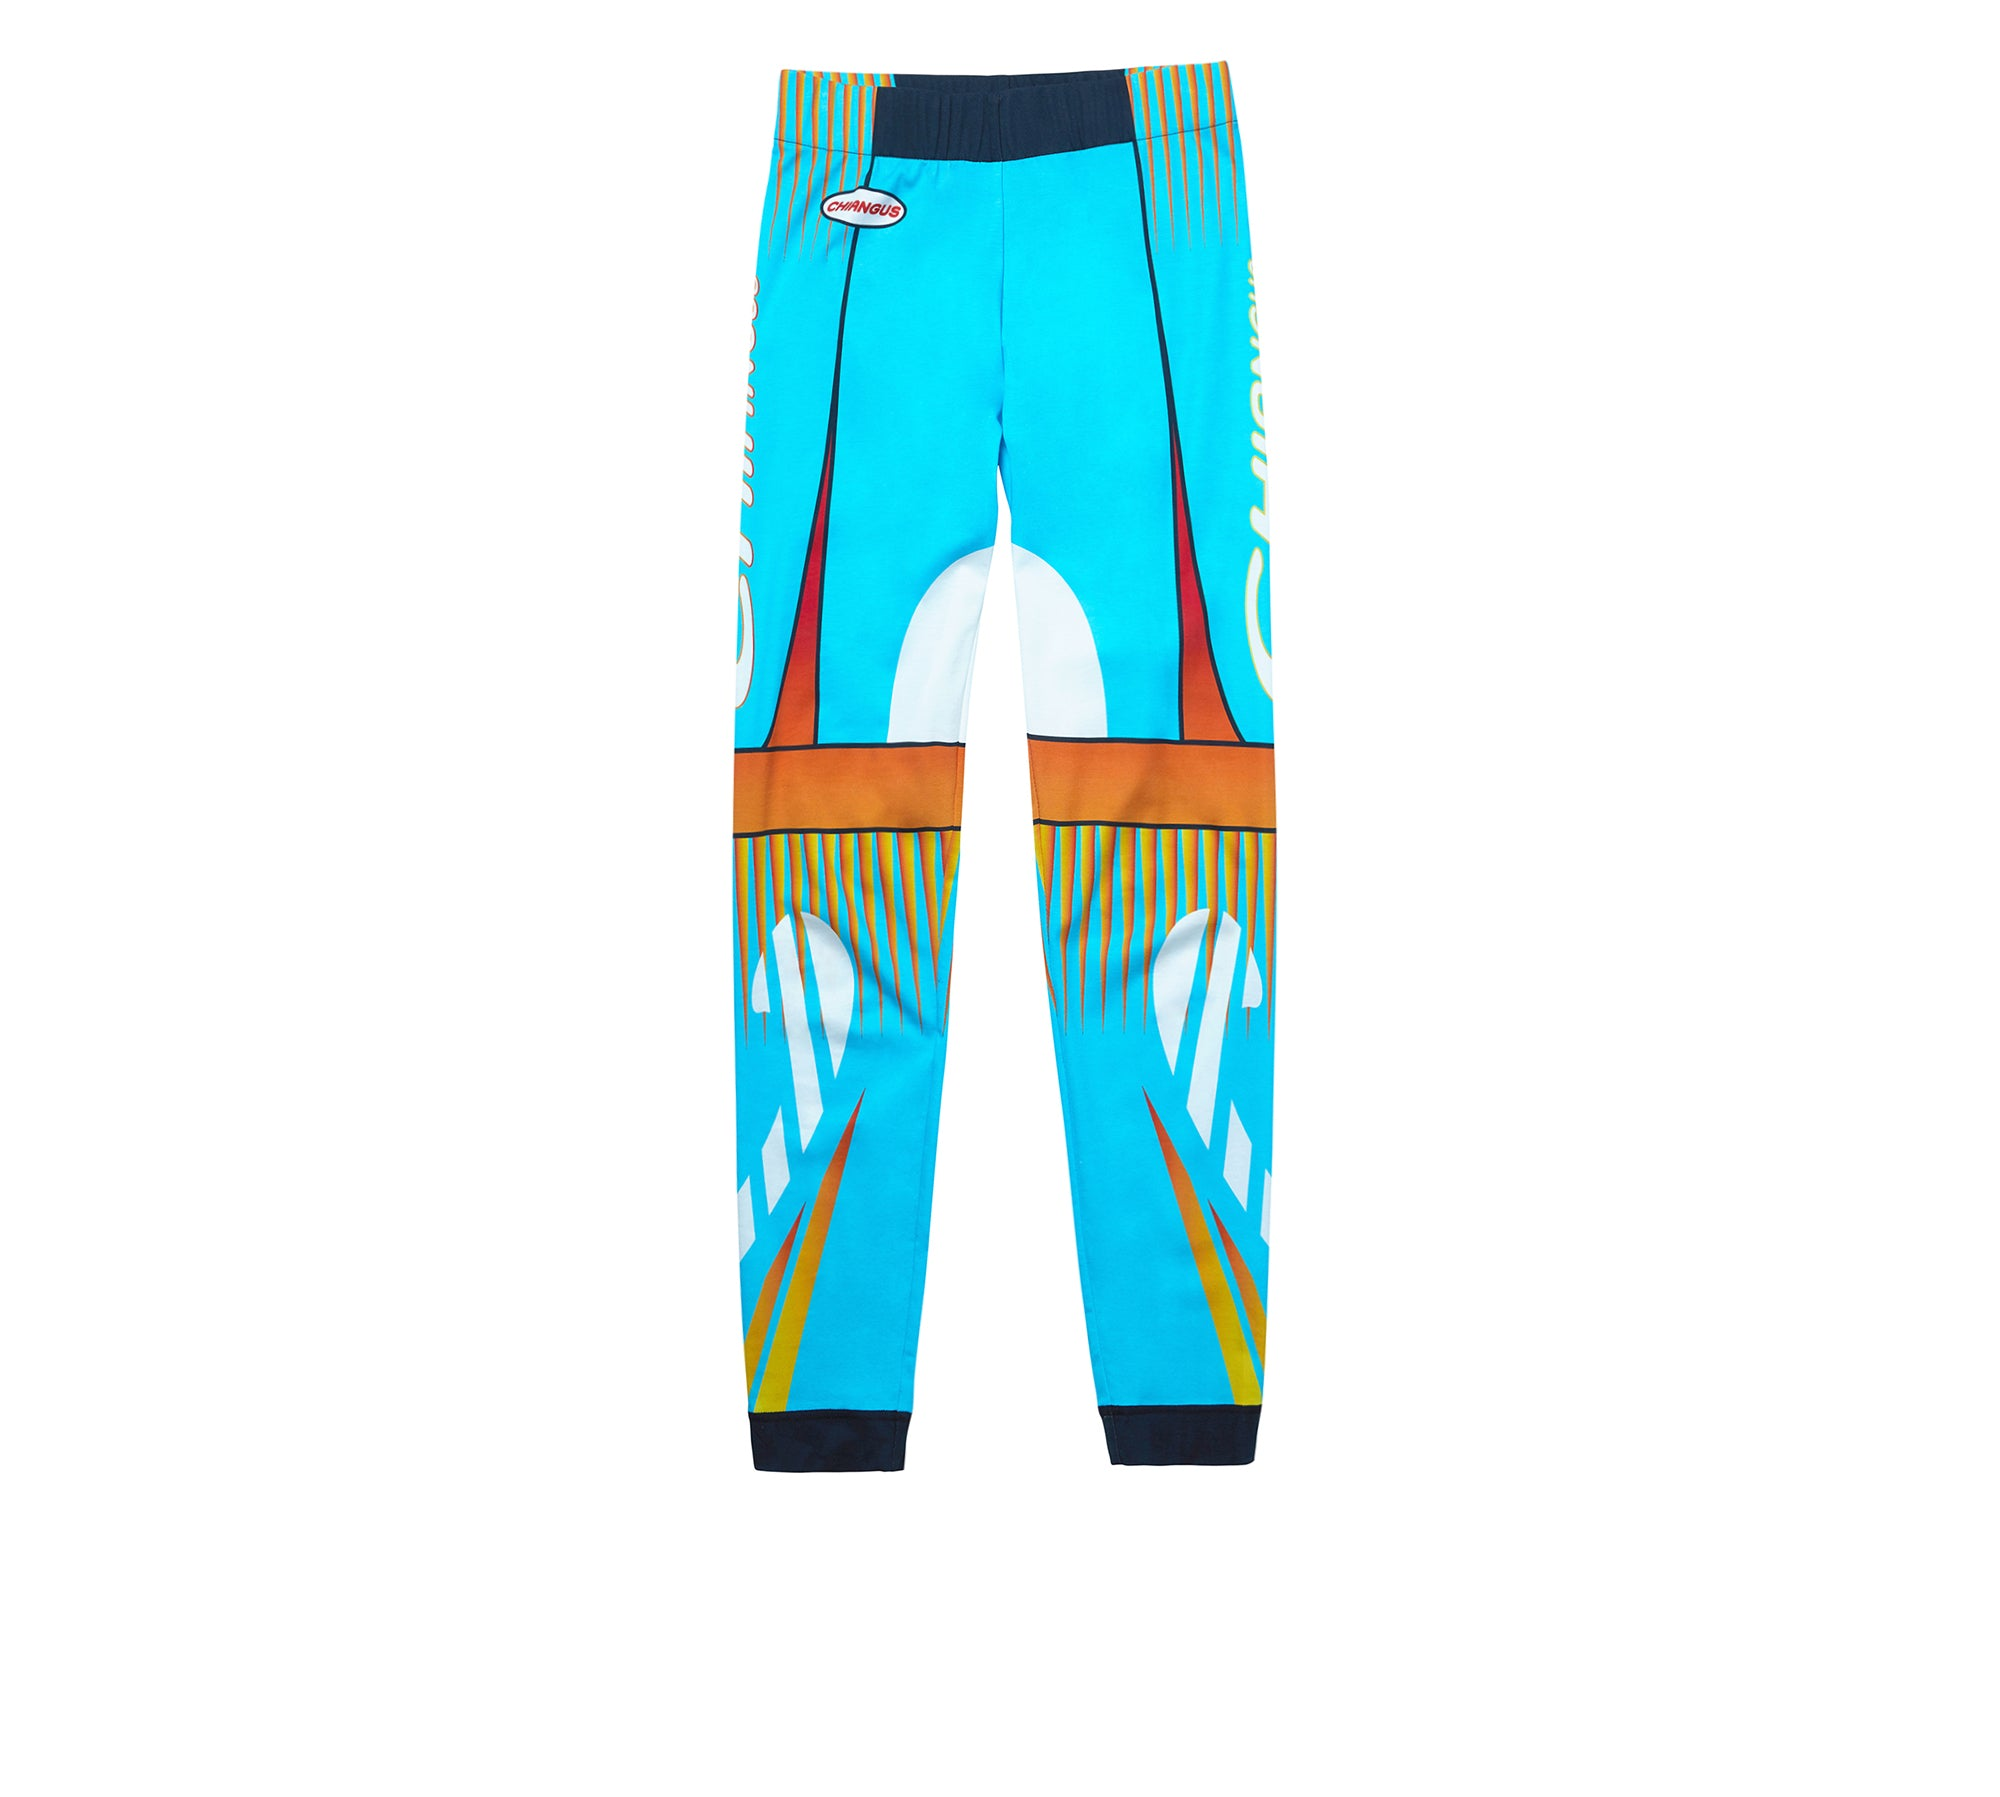 RACING PRINTED LEGGINGS